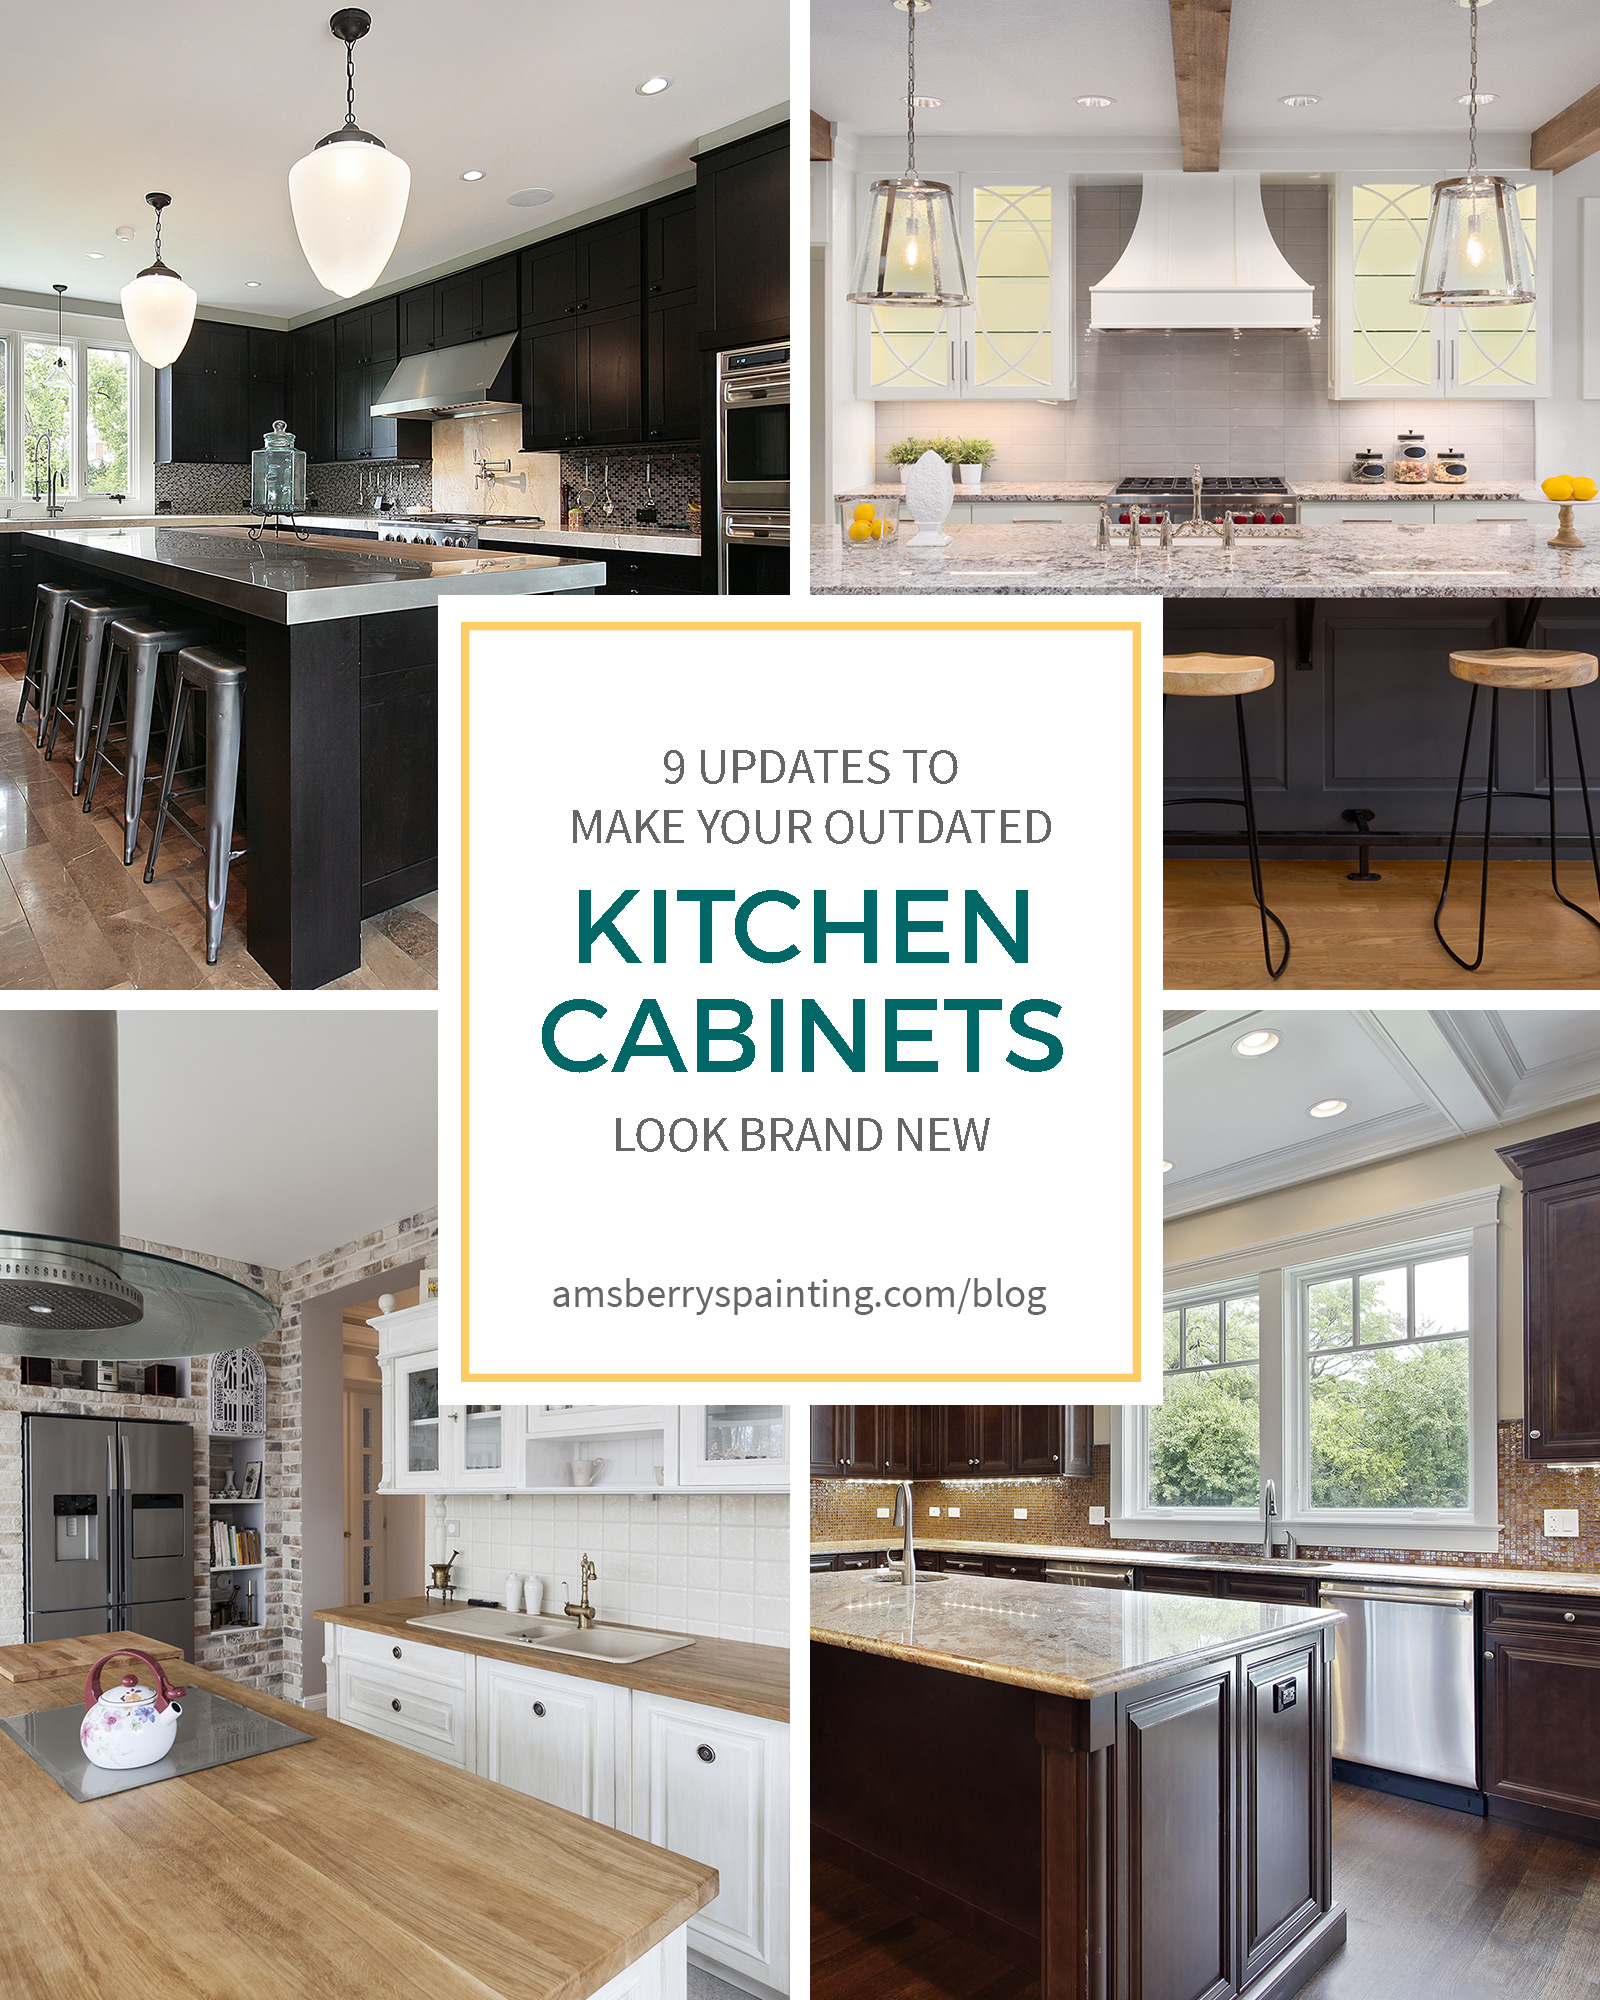 Delicieux 03 Oct 9 Upgrades To Make Your Outdated Kitchen Cabinets Look Brand New